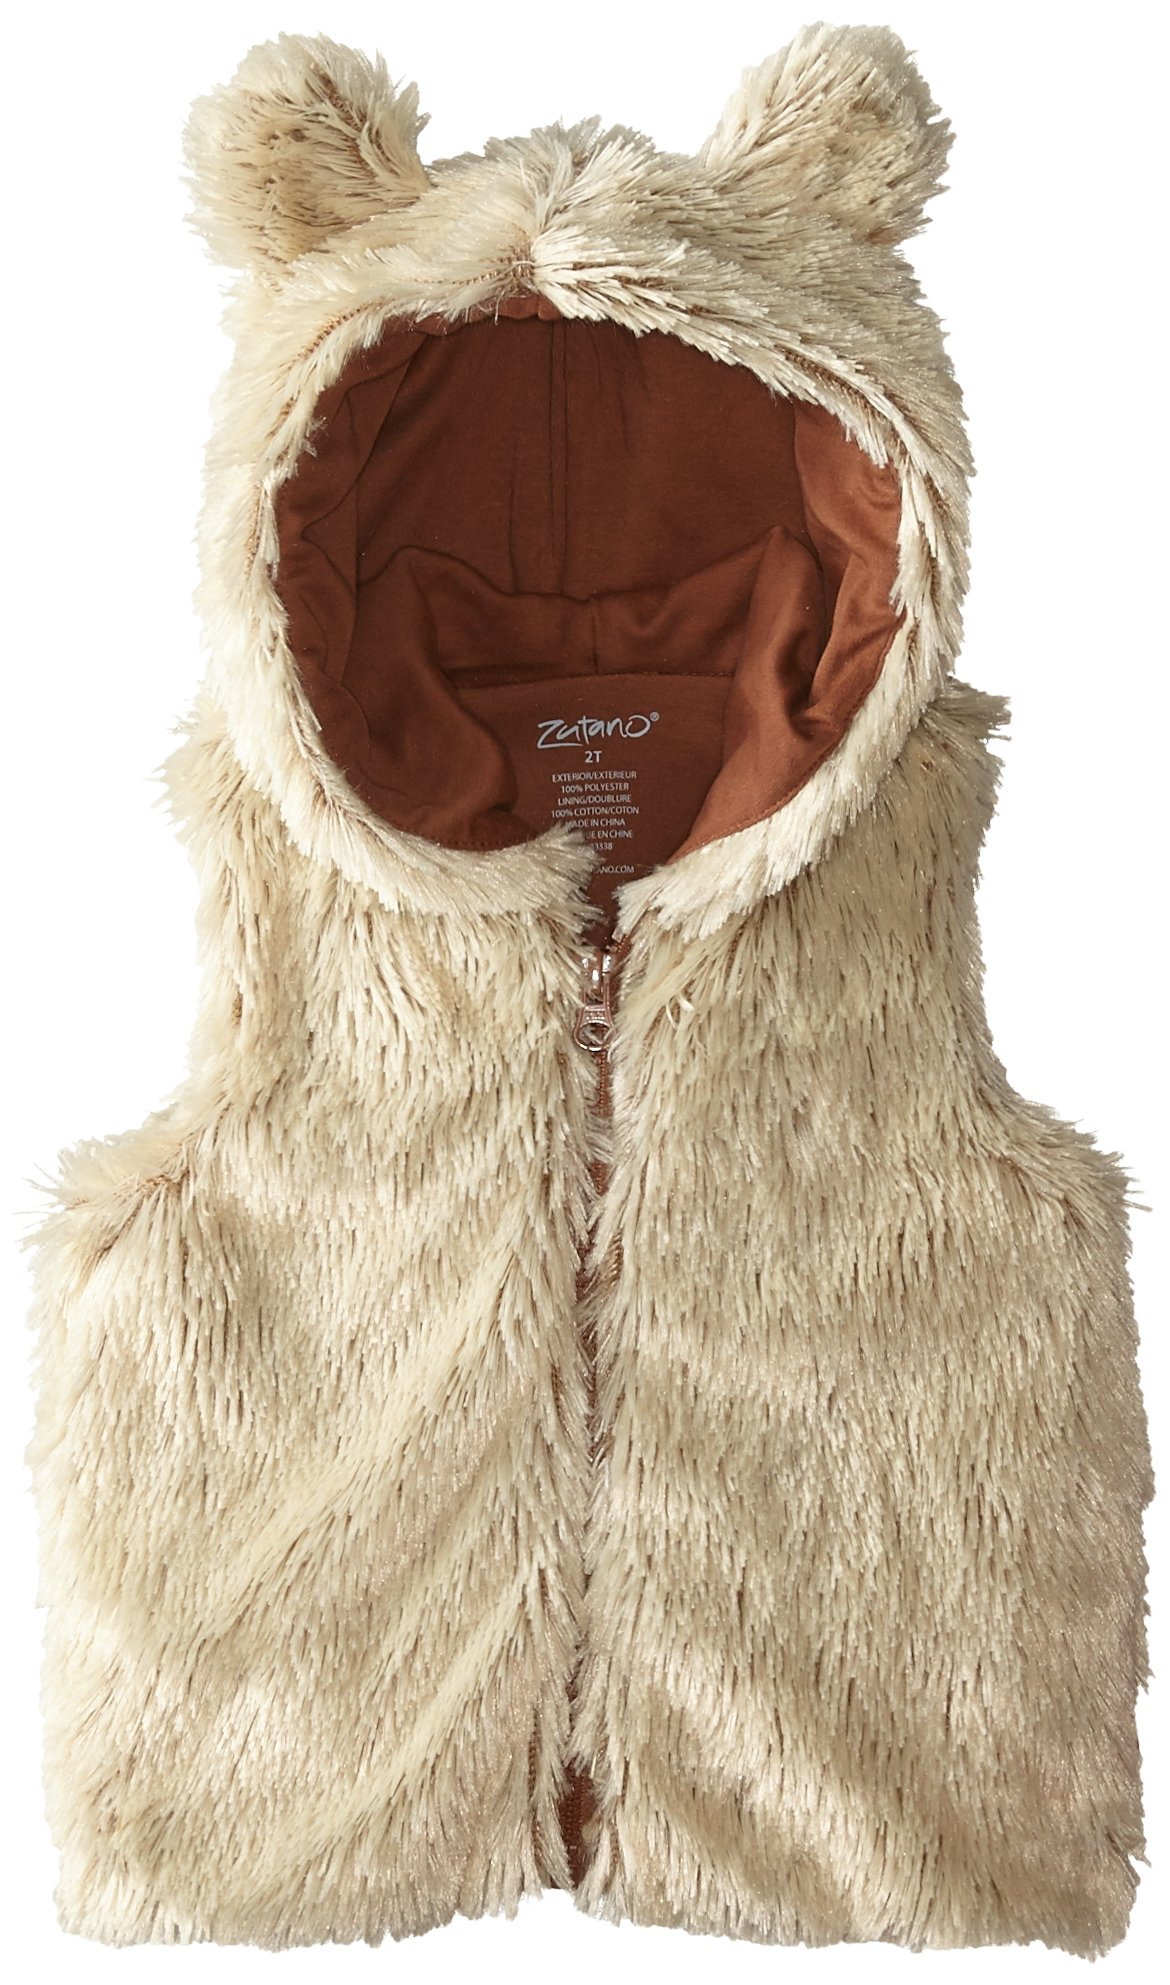 Zutano Little Girls' Toddler Shaggy Vest with Ears, Toffee, 2T by Zutano